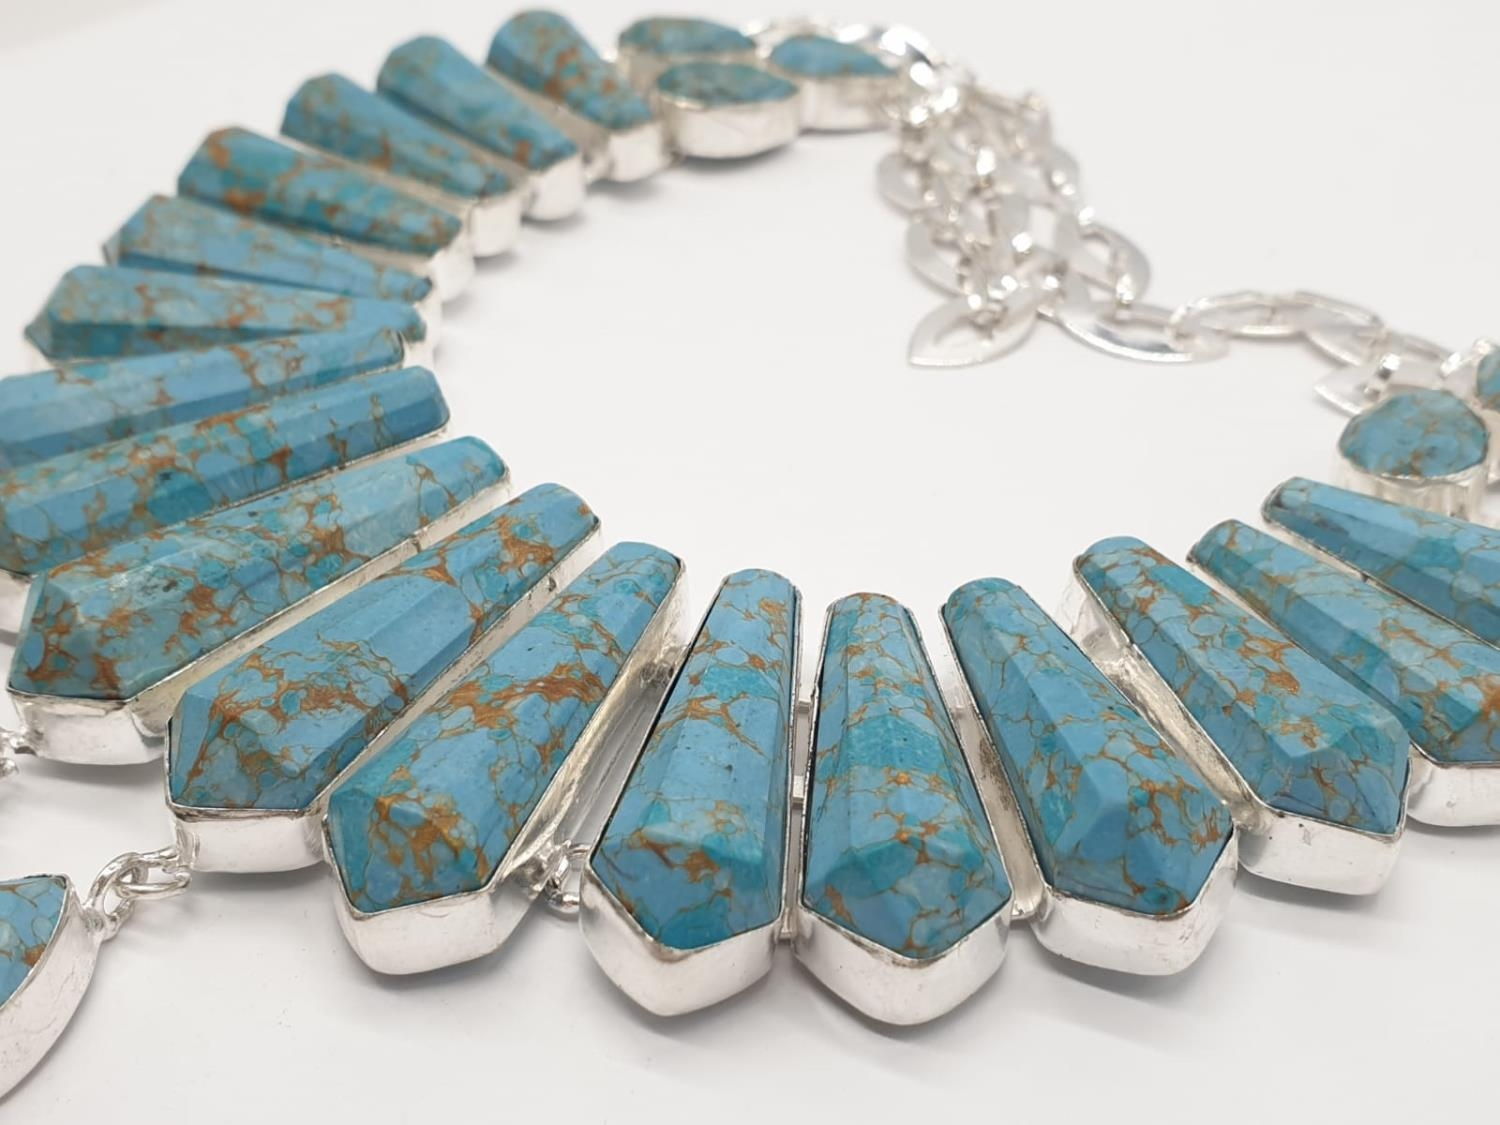 A Pharaonic style necklace and earrings set with light brown-gold veined turquoise obelisks and - Image 10 of 24